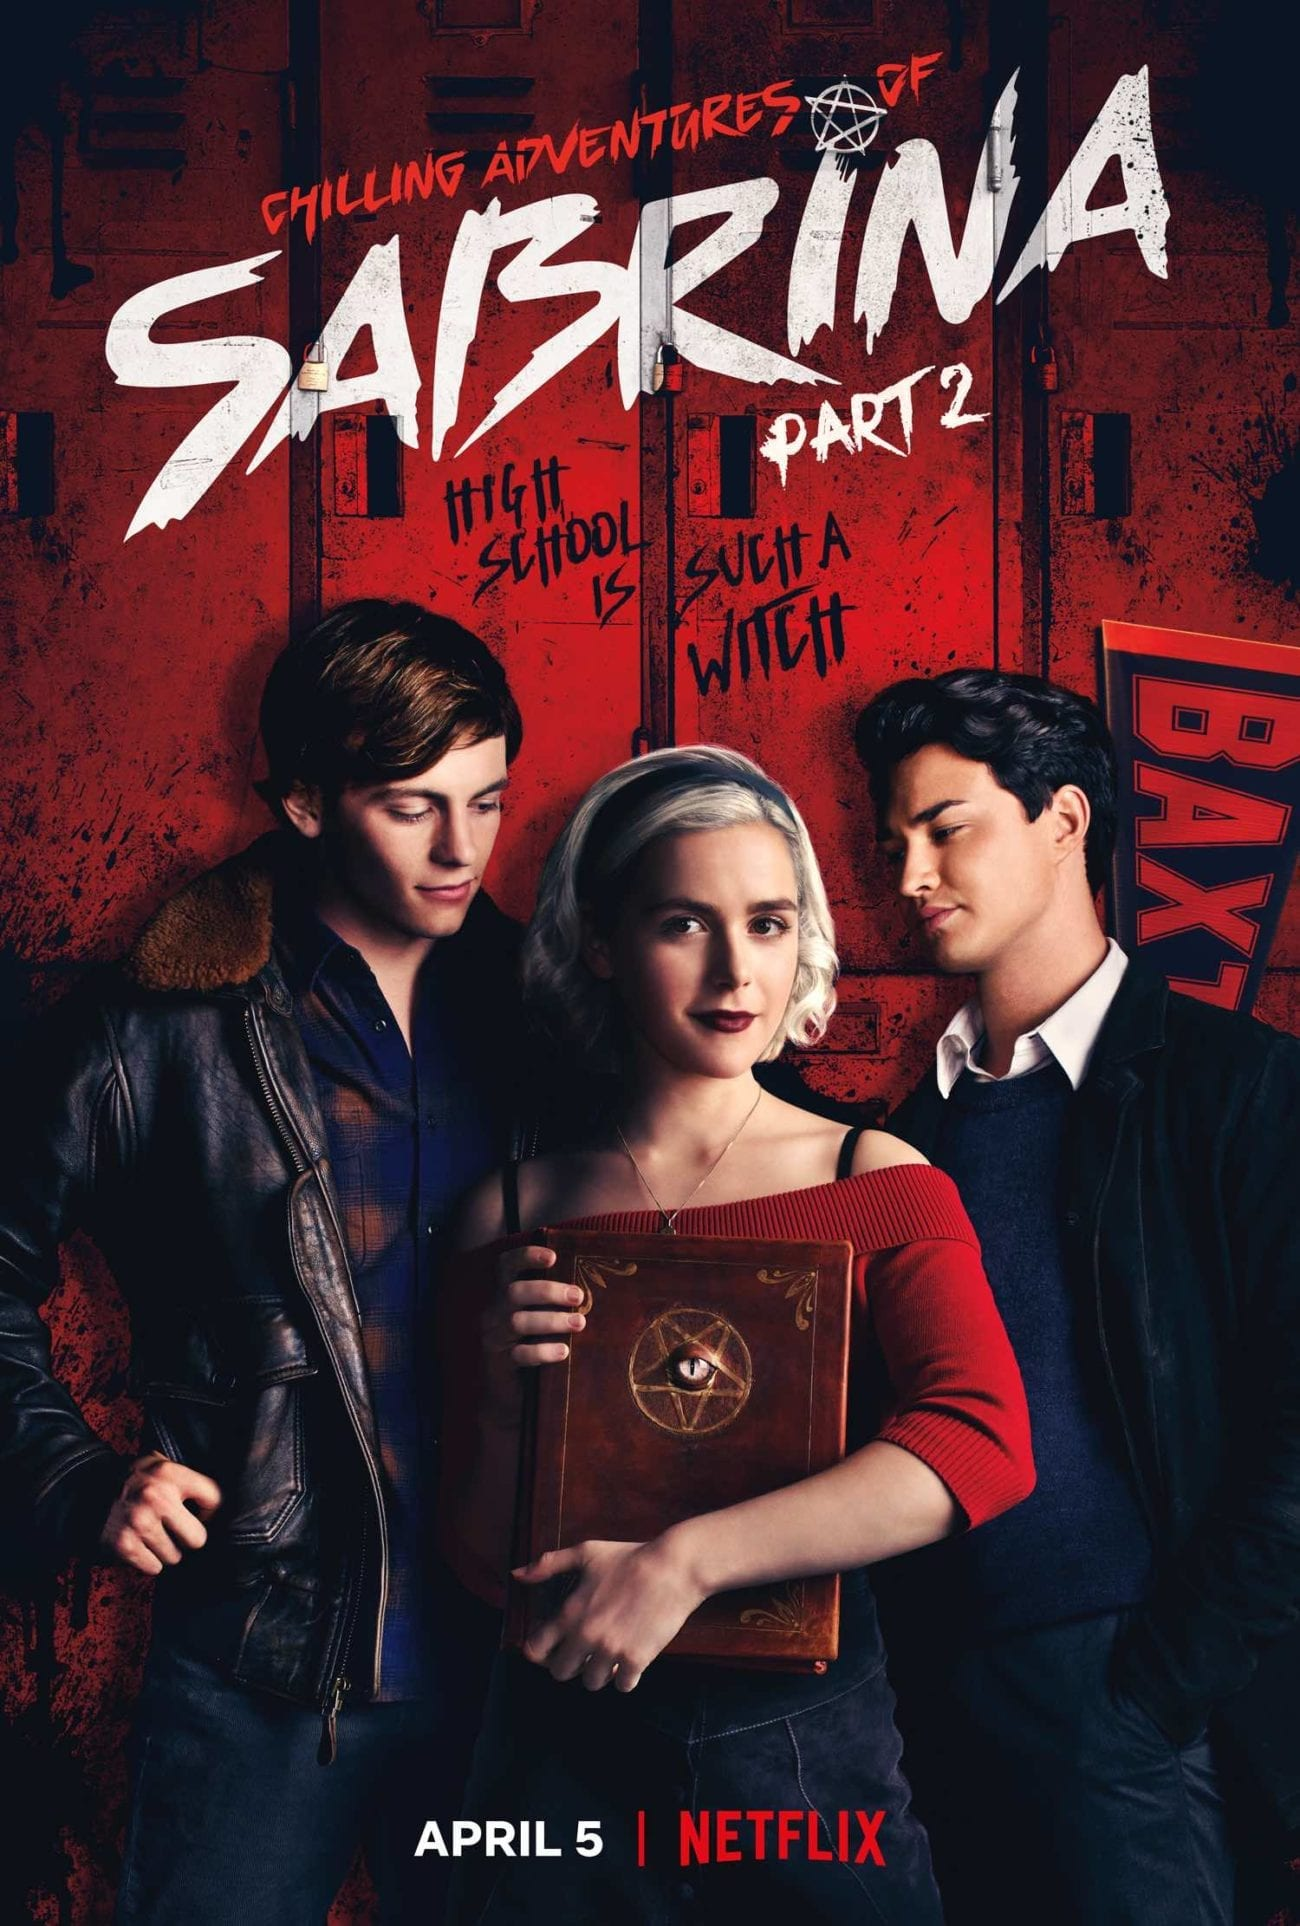 To get you excited for the second part of the Netflix series, we've conjured up everything you need to fall in love with 'Chilling Adventures of Sabrina'.